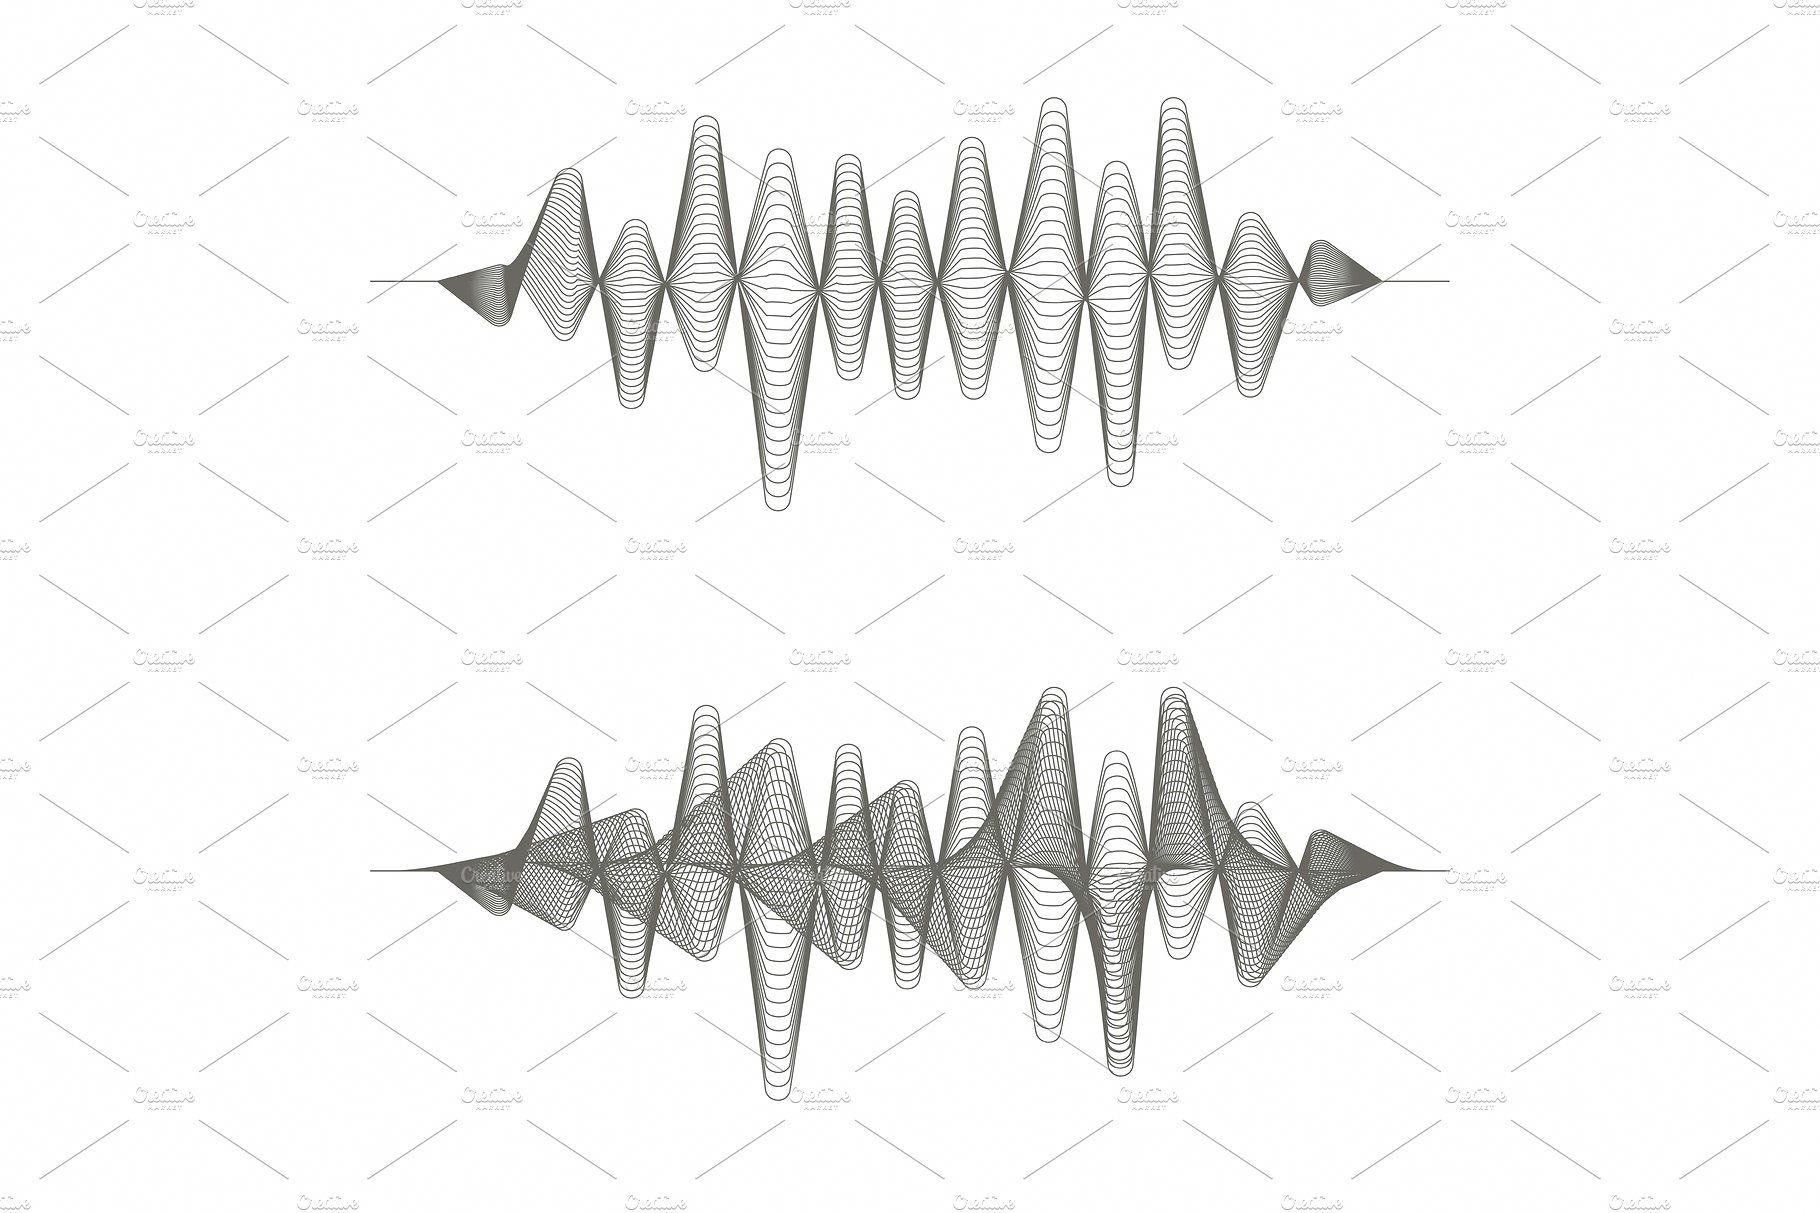 Two Monochrome Sound Waves On White Background By Woters